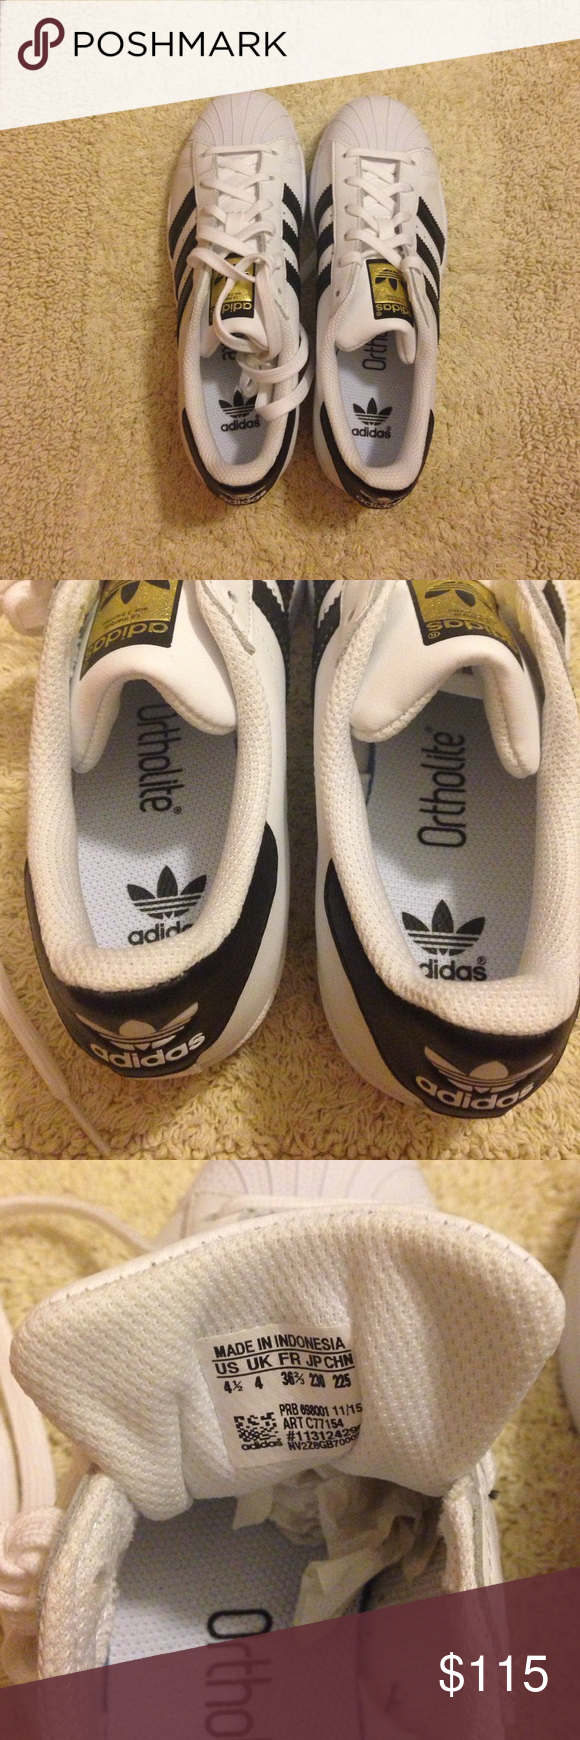 Adidas superstar, Shoes sneakers adidas